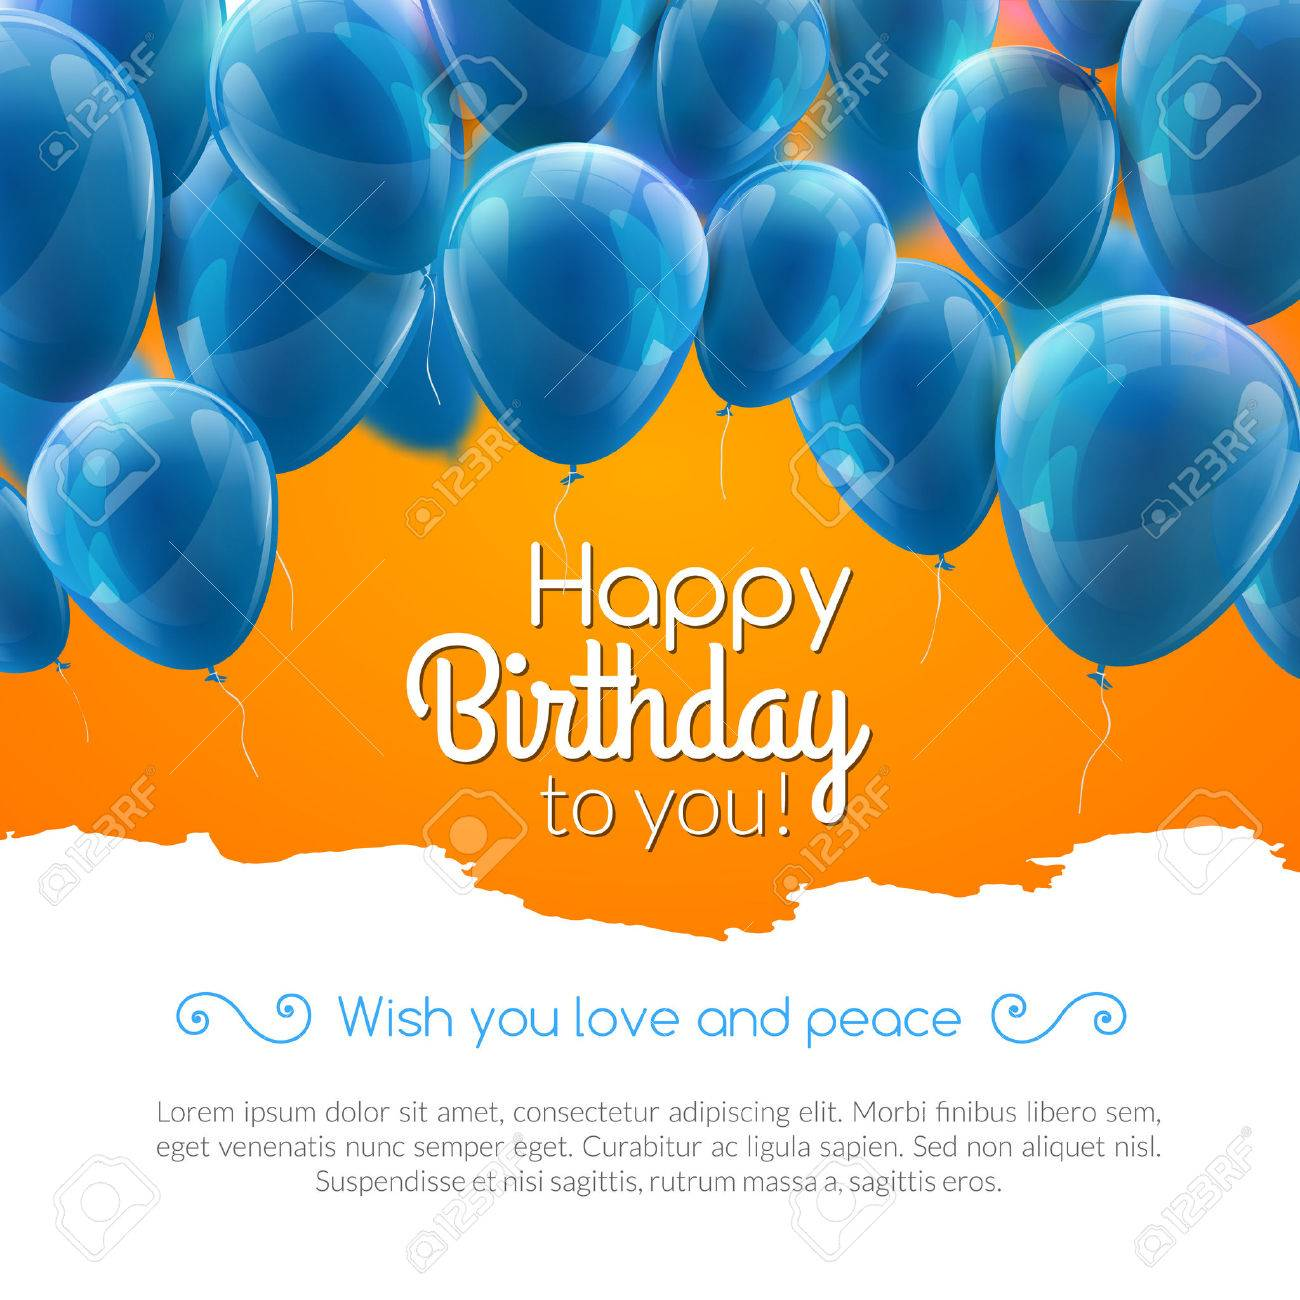 Vector Happy Birthday Card With Blue Balloons Party Invitation Royalty Free Cliparts Vectors And Stock Illustration Image 58052002